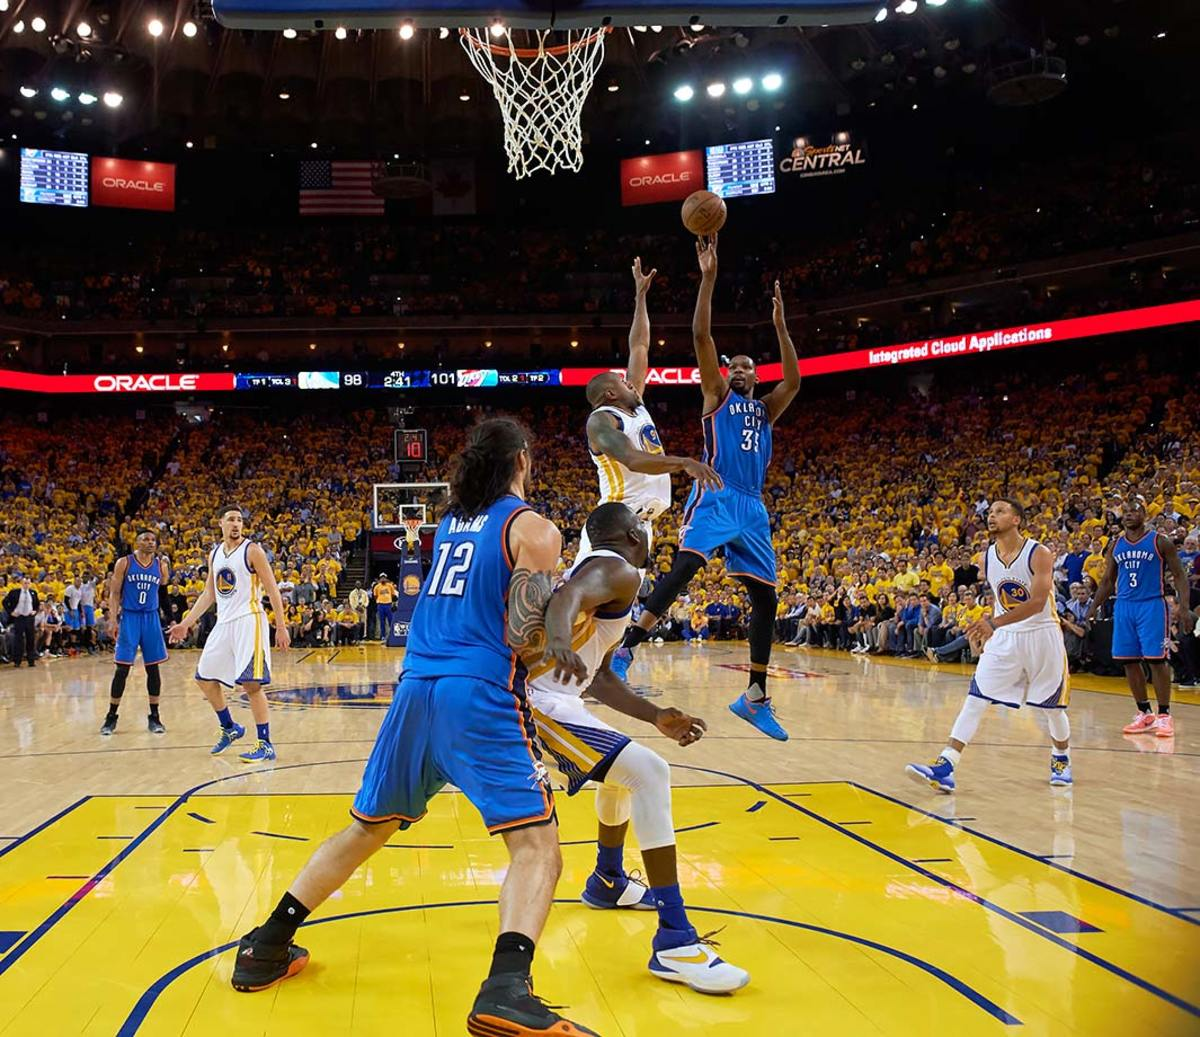 43-NBA-Western-Conference-Finals-Game-1-Kevin-Durant-SI385_TK1_08067.jpg